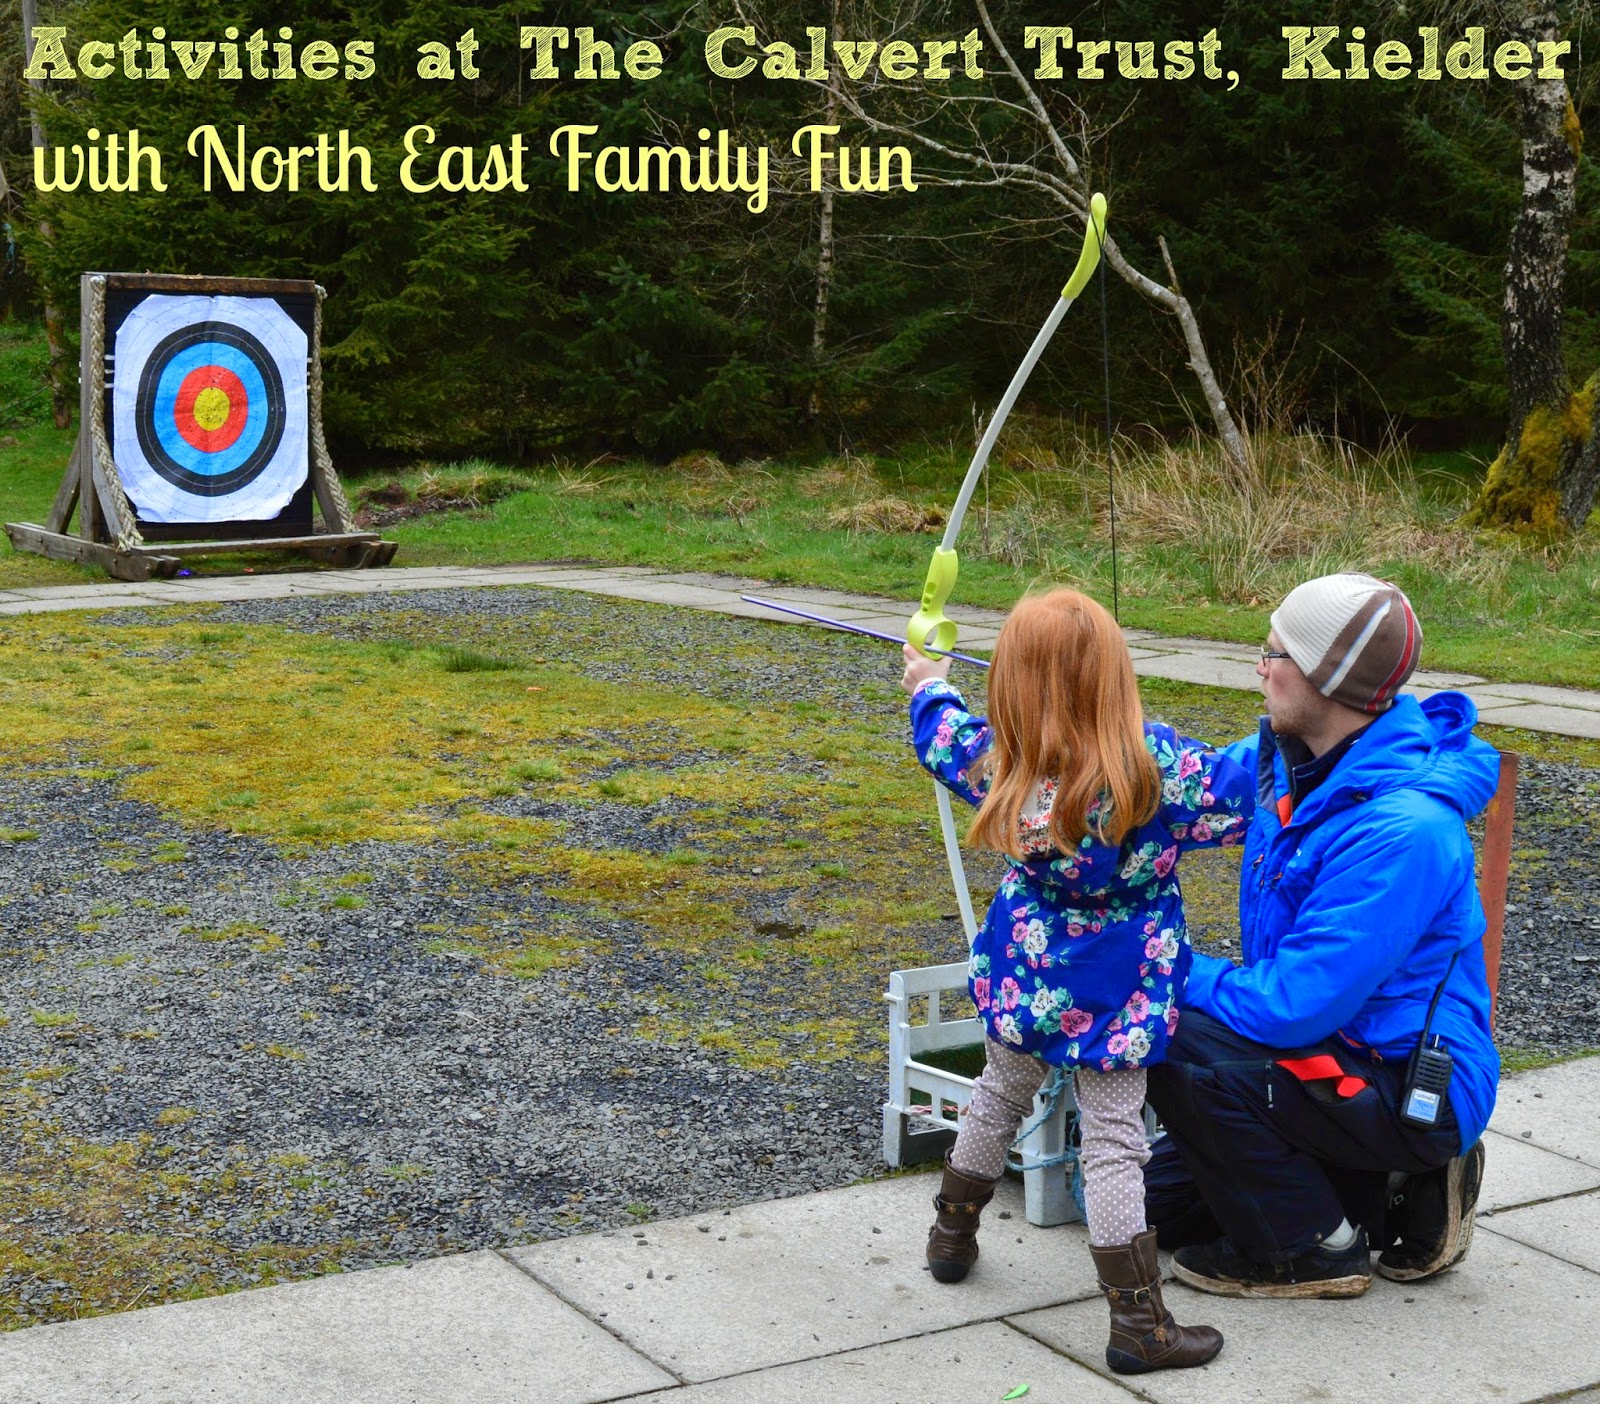 Outdoor activities at The Calvert Trust, Kielder - A review